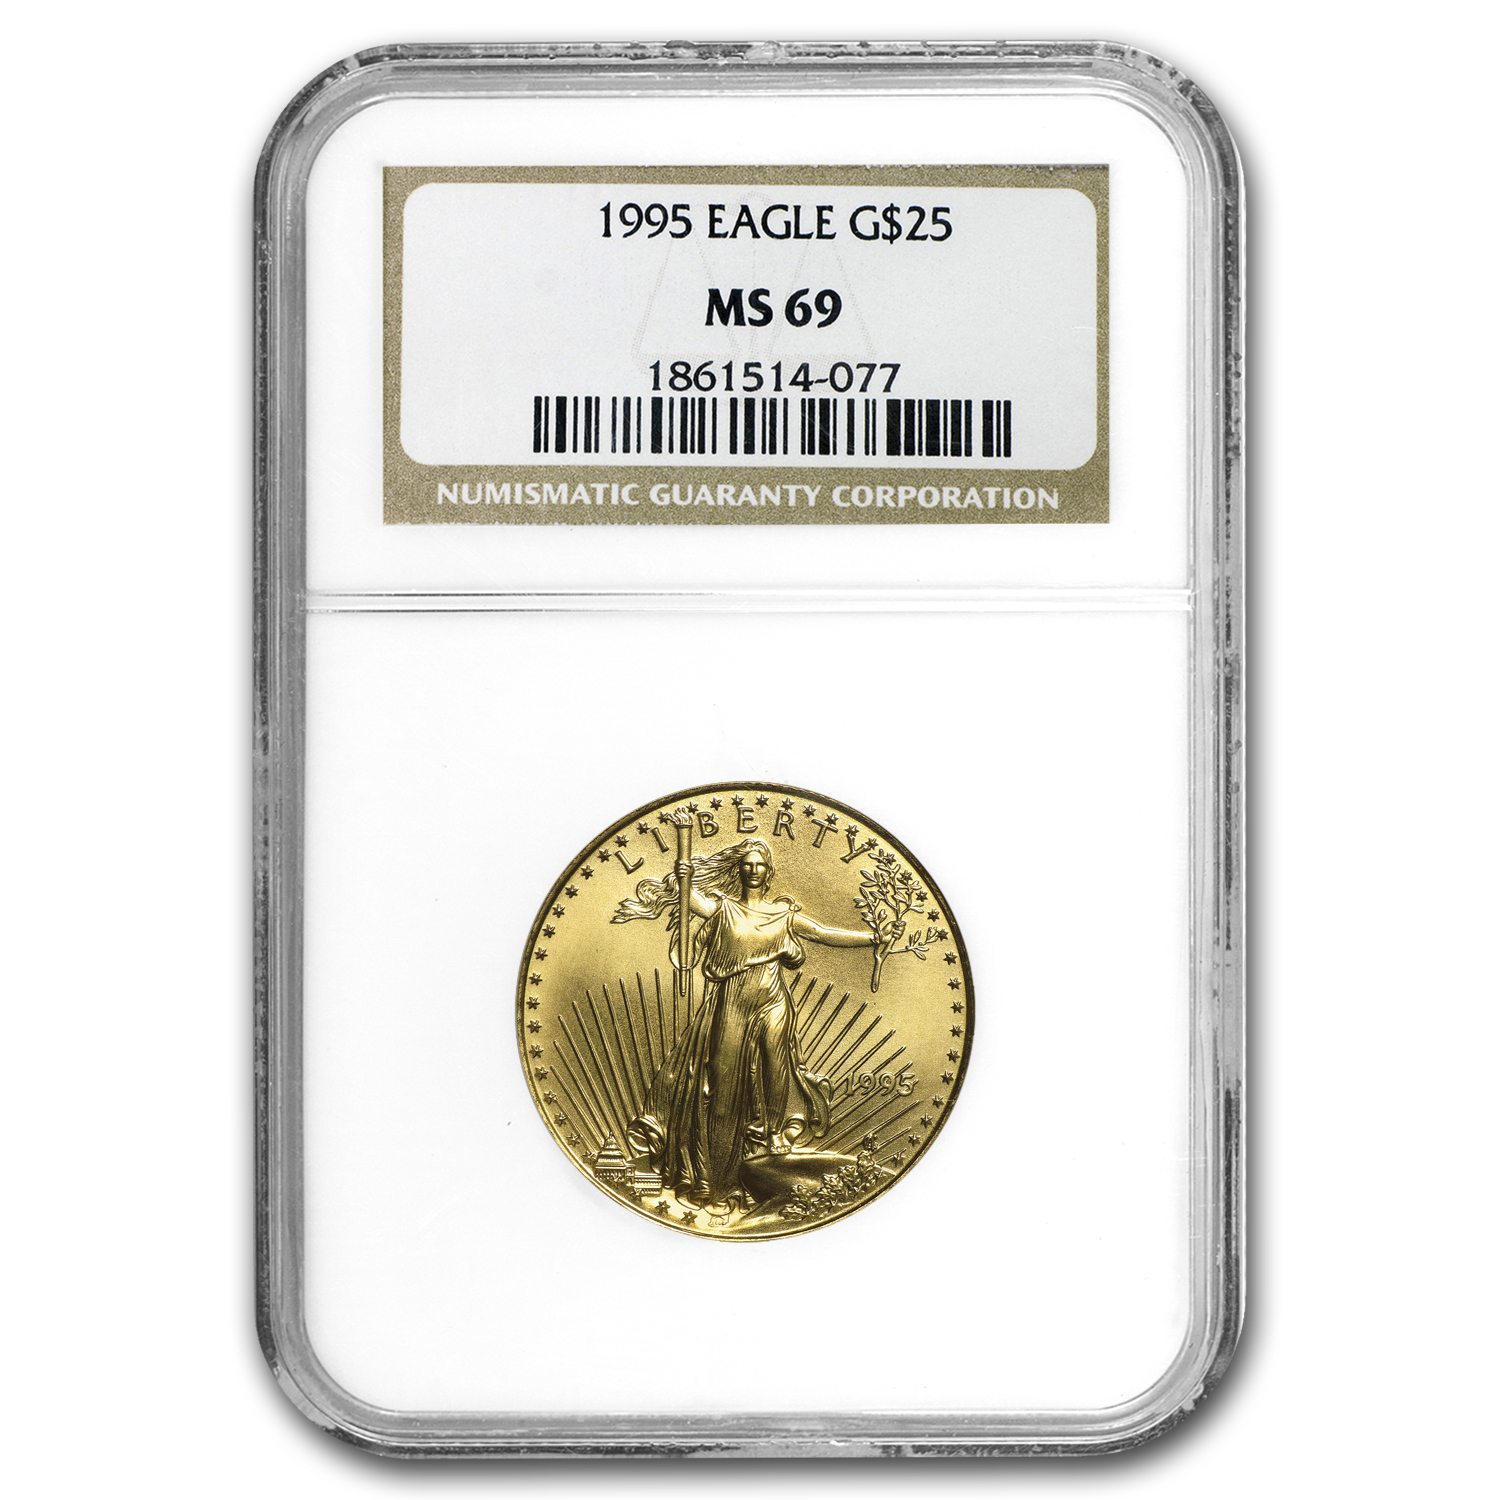 1995 1/2 oz Gold American Eagle MS-69 NGC